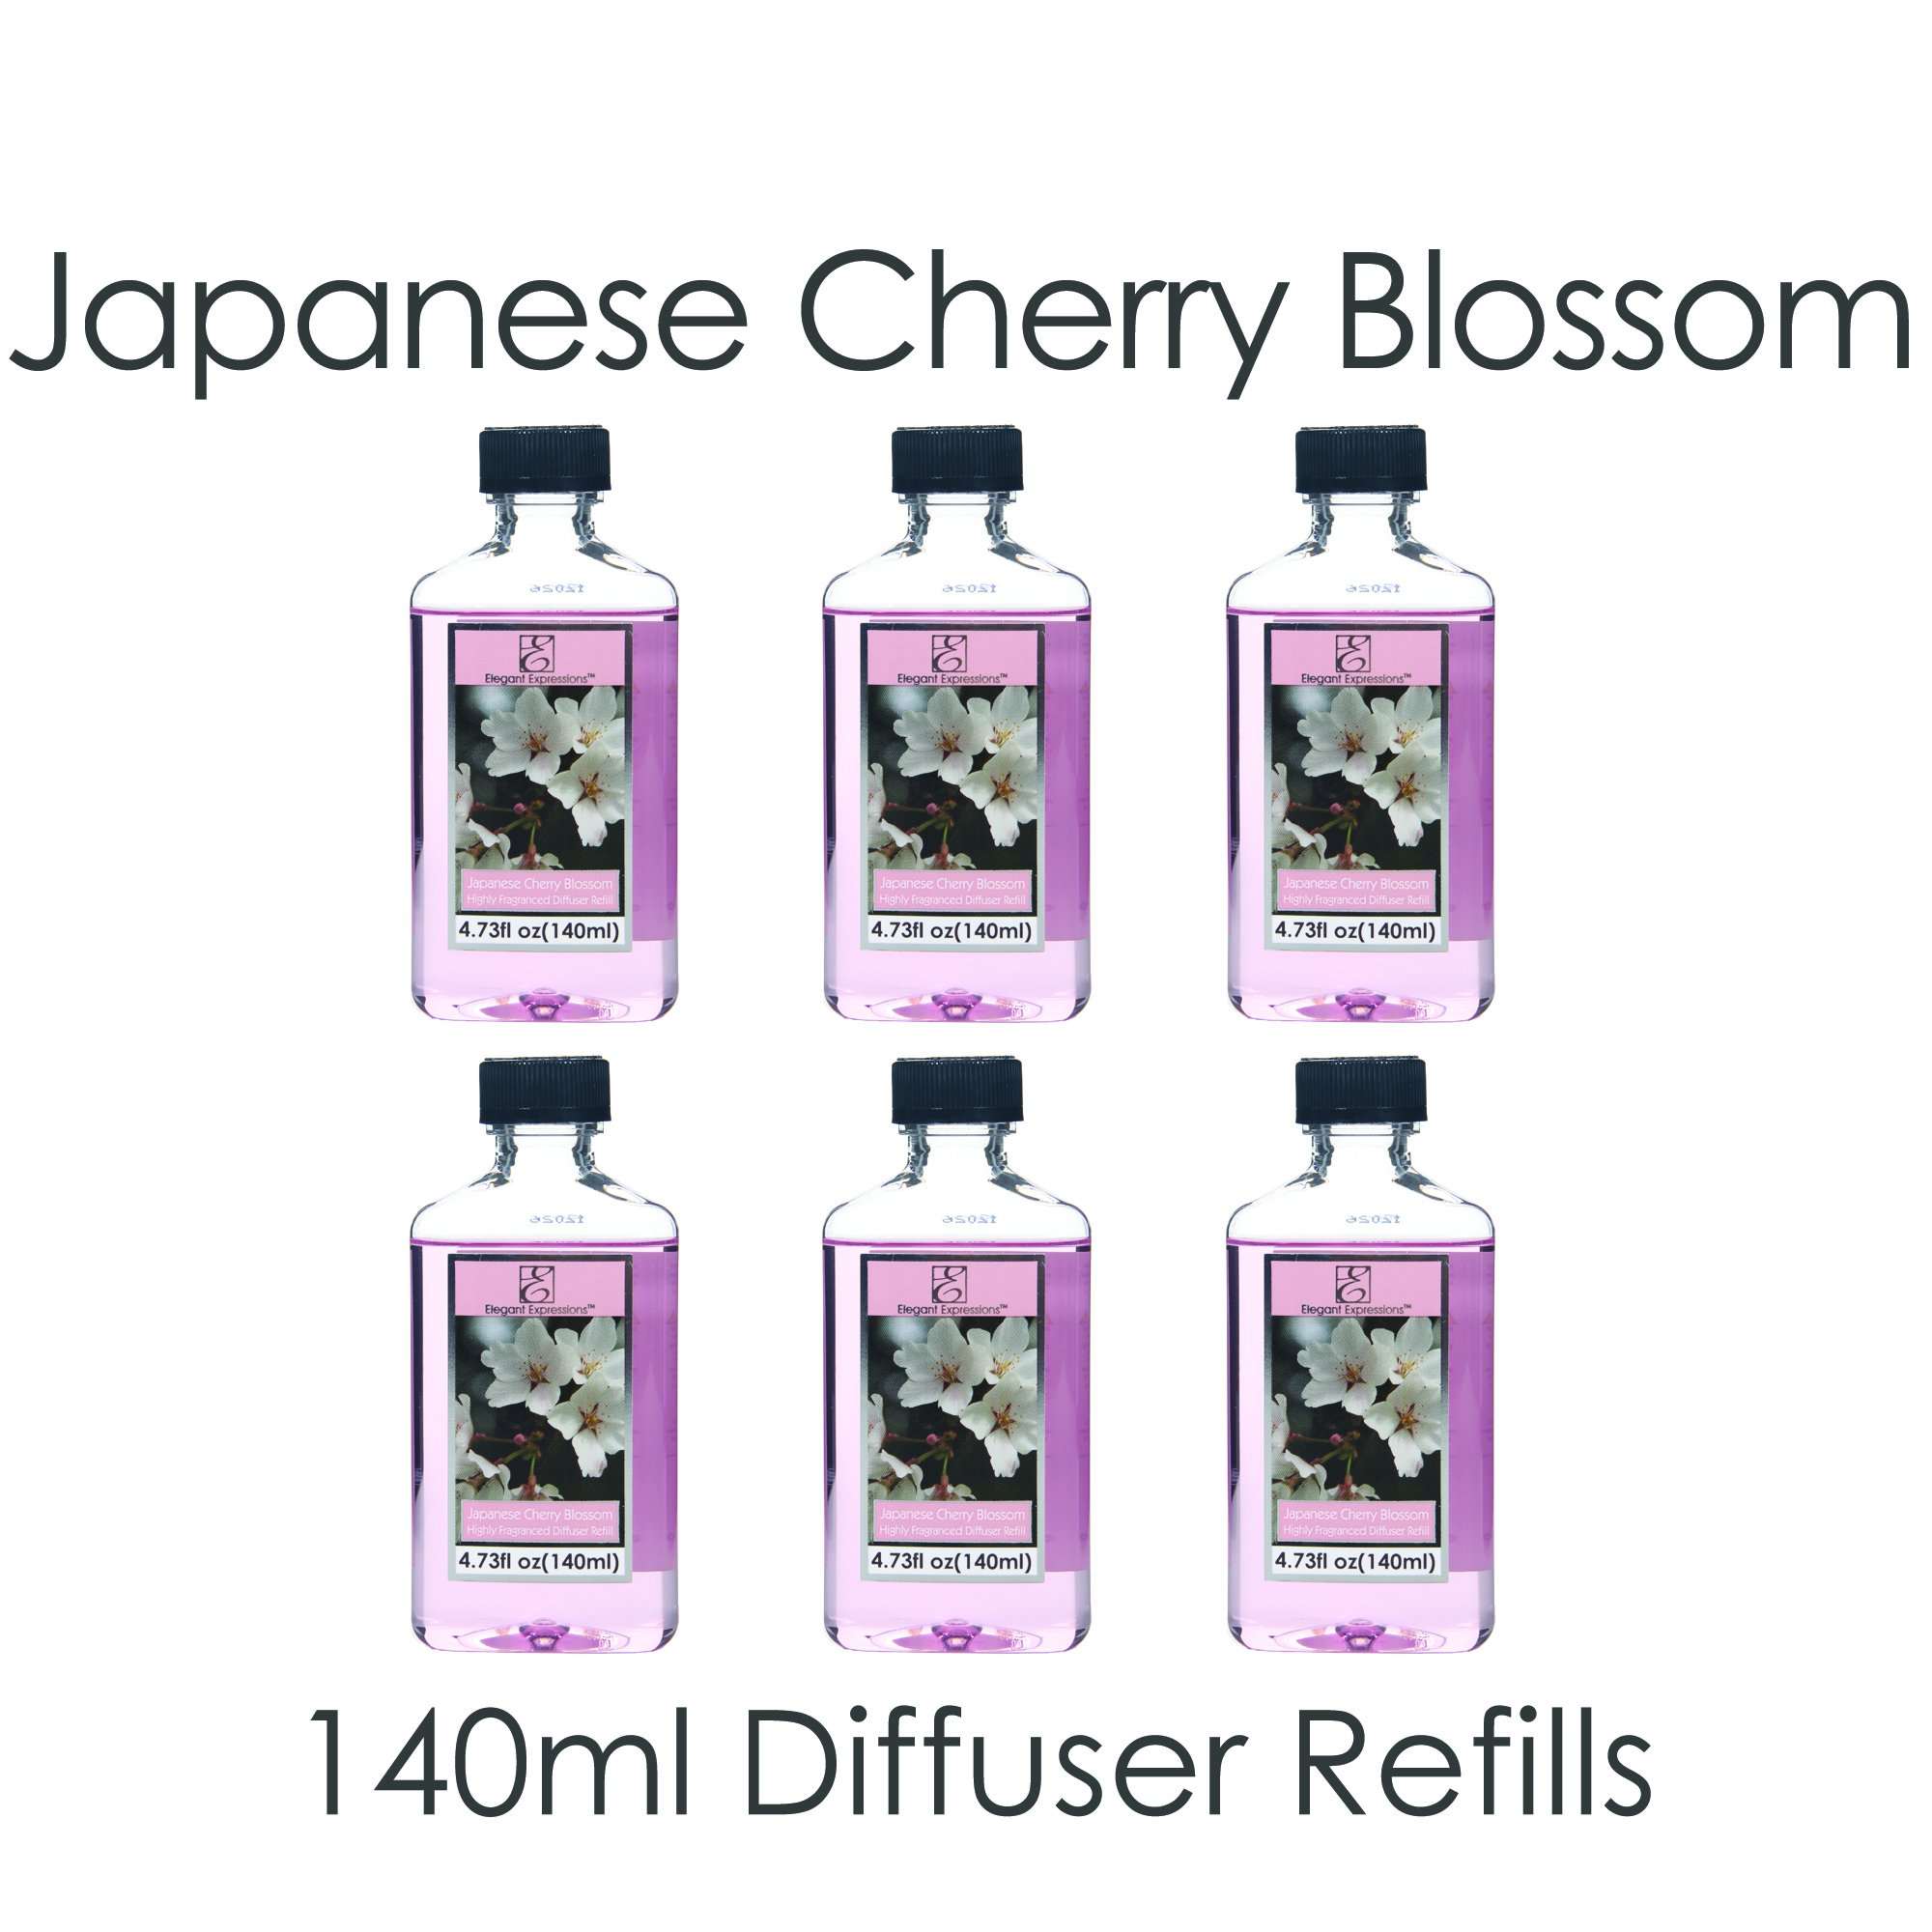 Aromatherapy Hosley Premium, Japanese Cherry Blossoms, Highly Scented, Reed Diffuser Refill Oil- Set of 6 / 140 ml (4.73 fl oz) Each - Made in USA. BULK BUY.